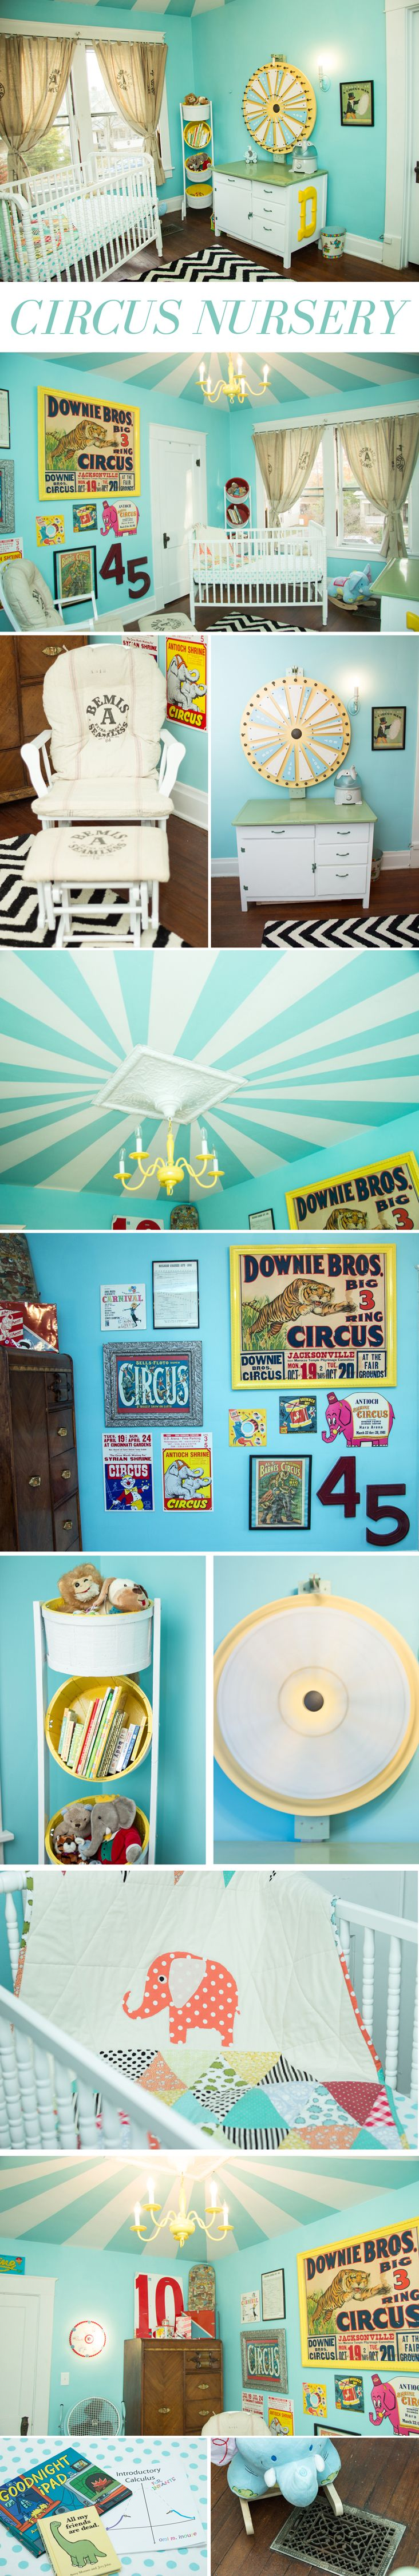 Vintage circus nursery! Ritzy Rosebud.  Love this, especially the ceiling!